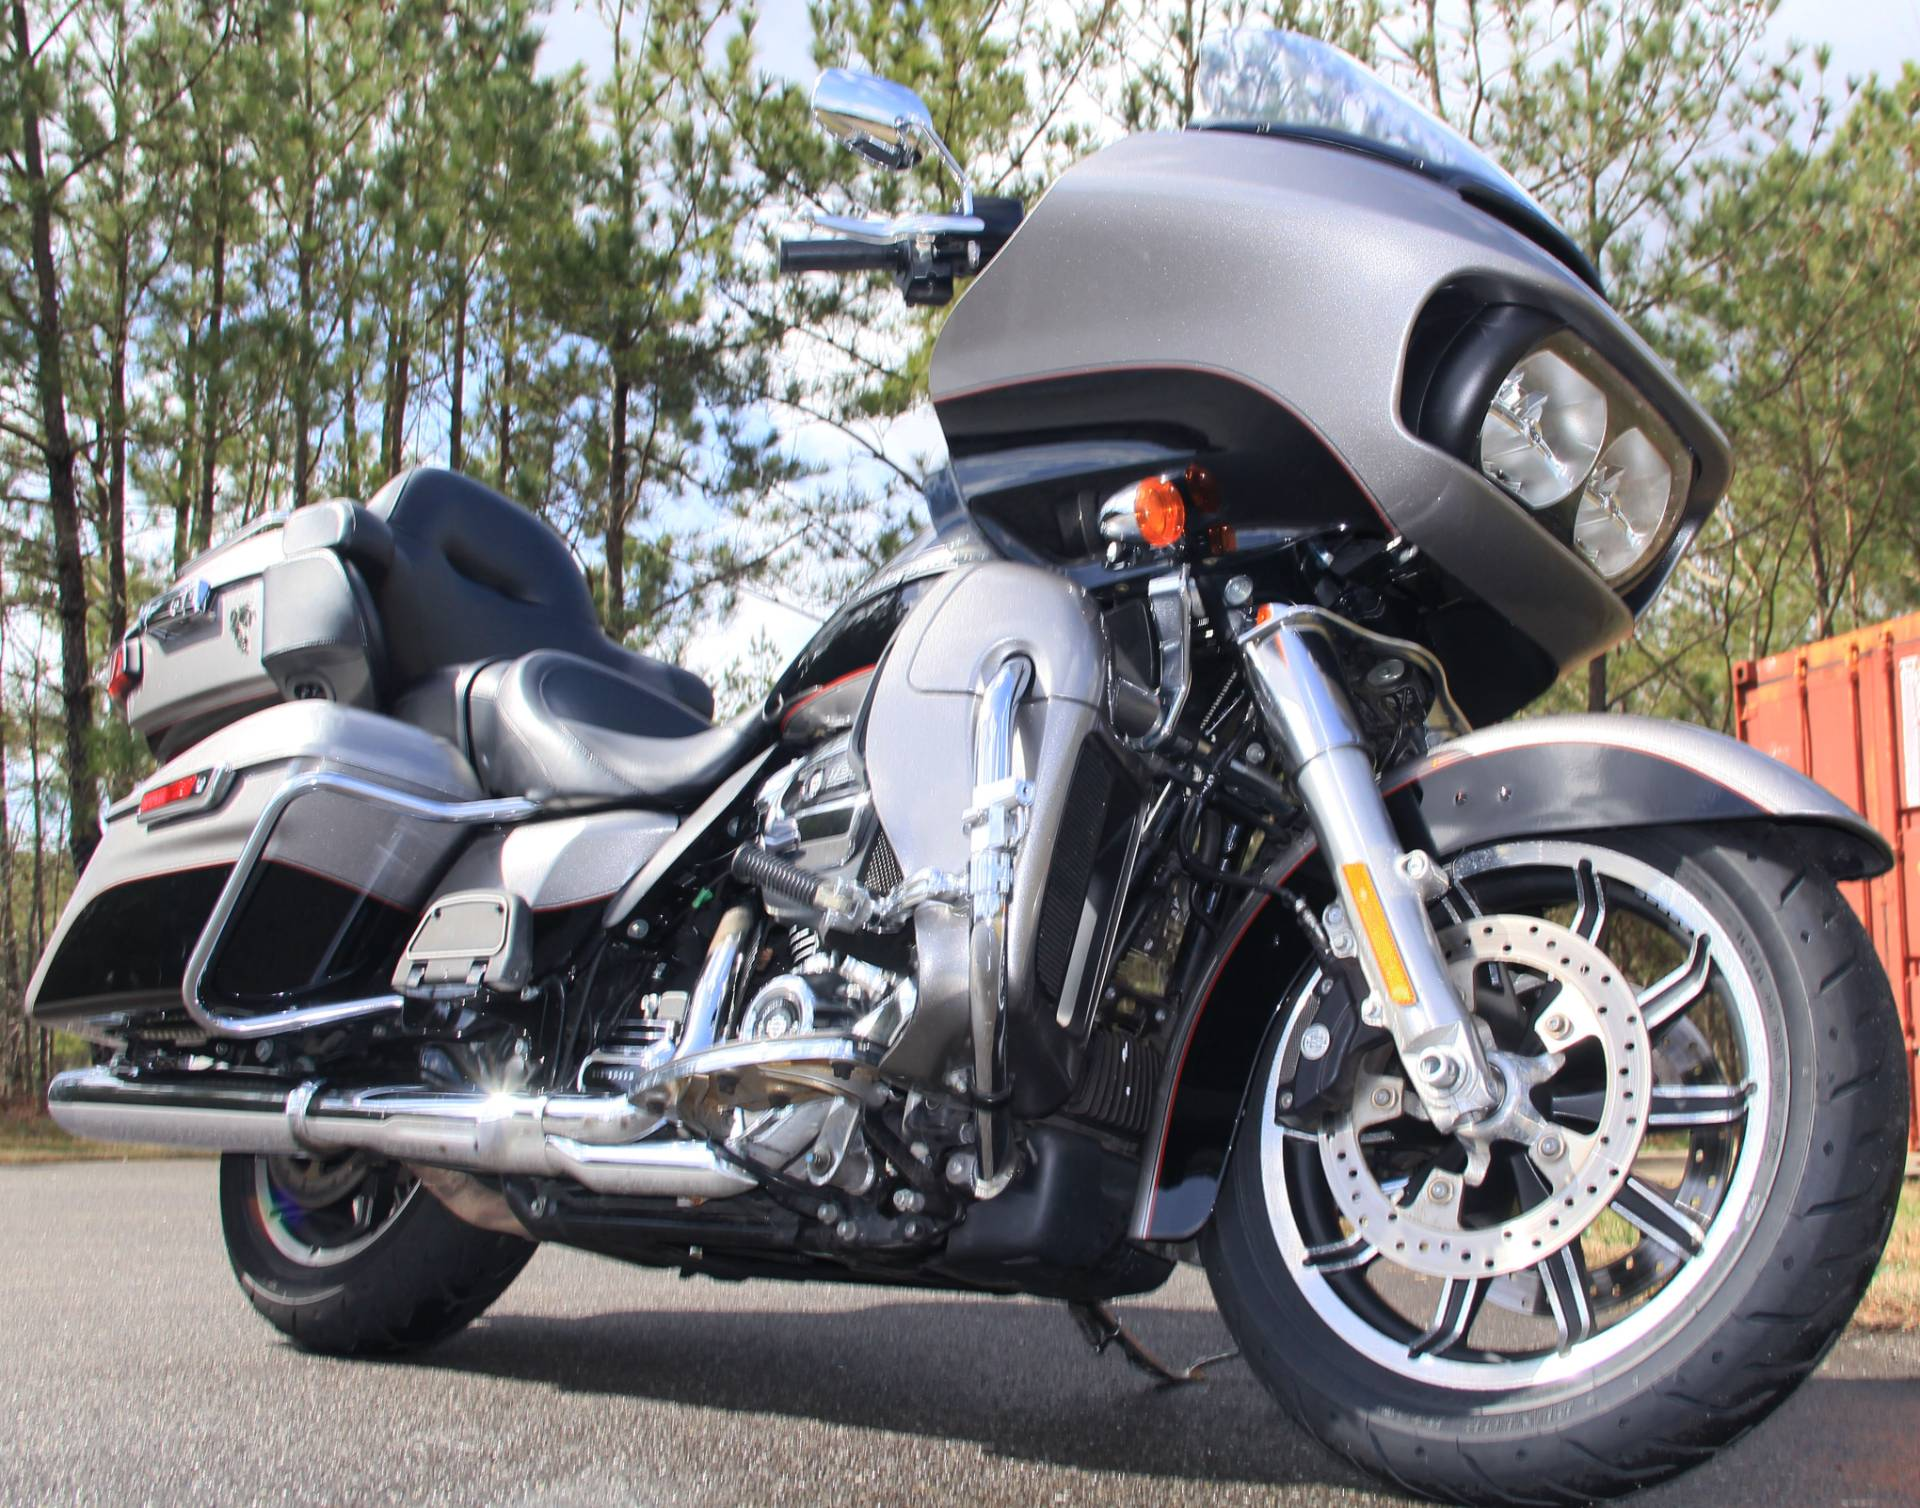 2017 Harley-Davidson Road Glide Ultra in Cartersville, Georgia - Photo 2